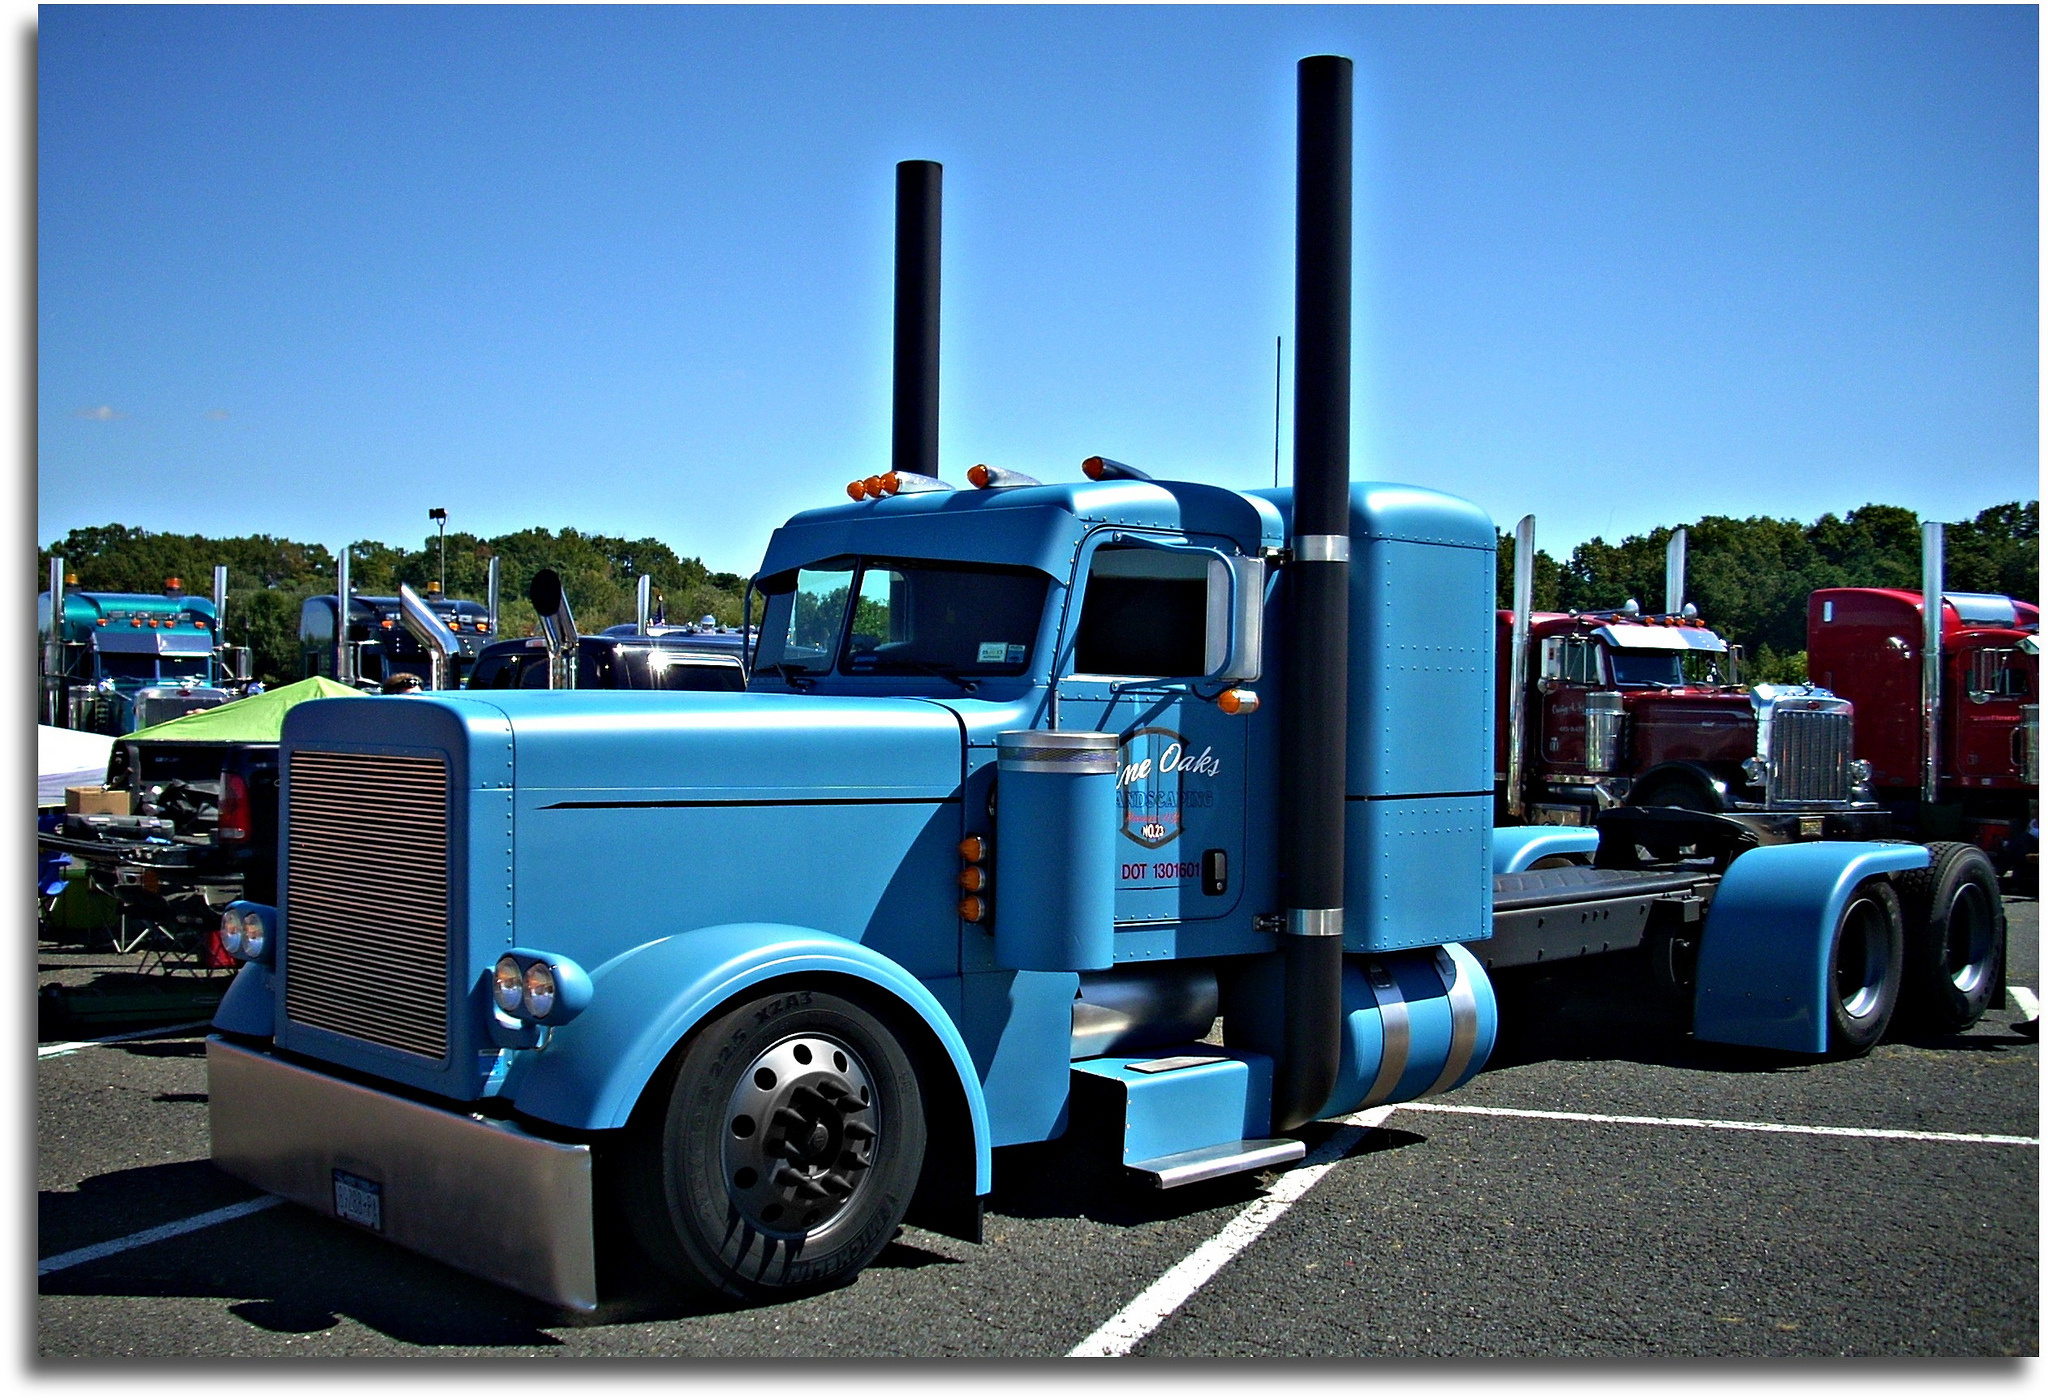 Peterbilt truck 359 custom tractor semi rigs rig wallpaper ...